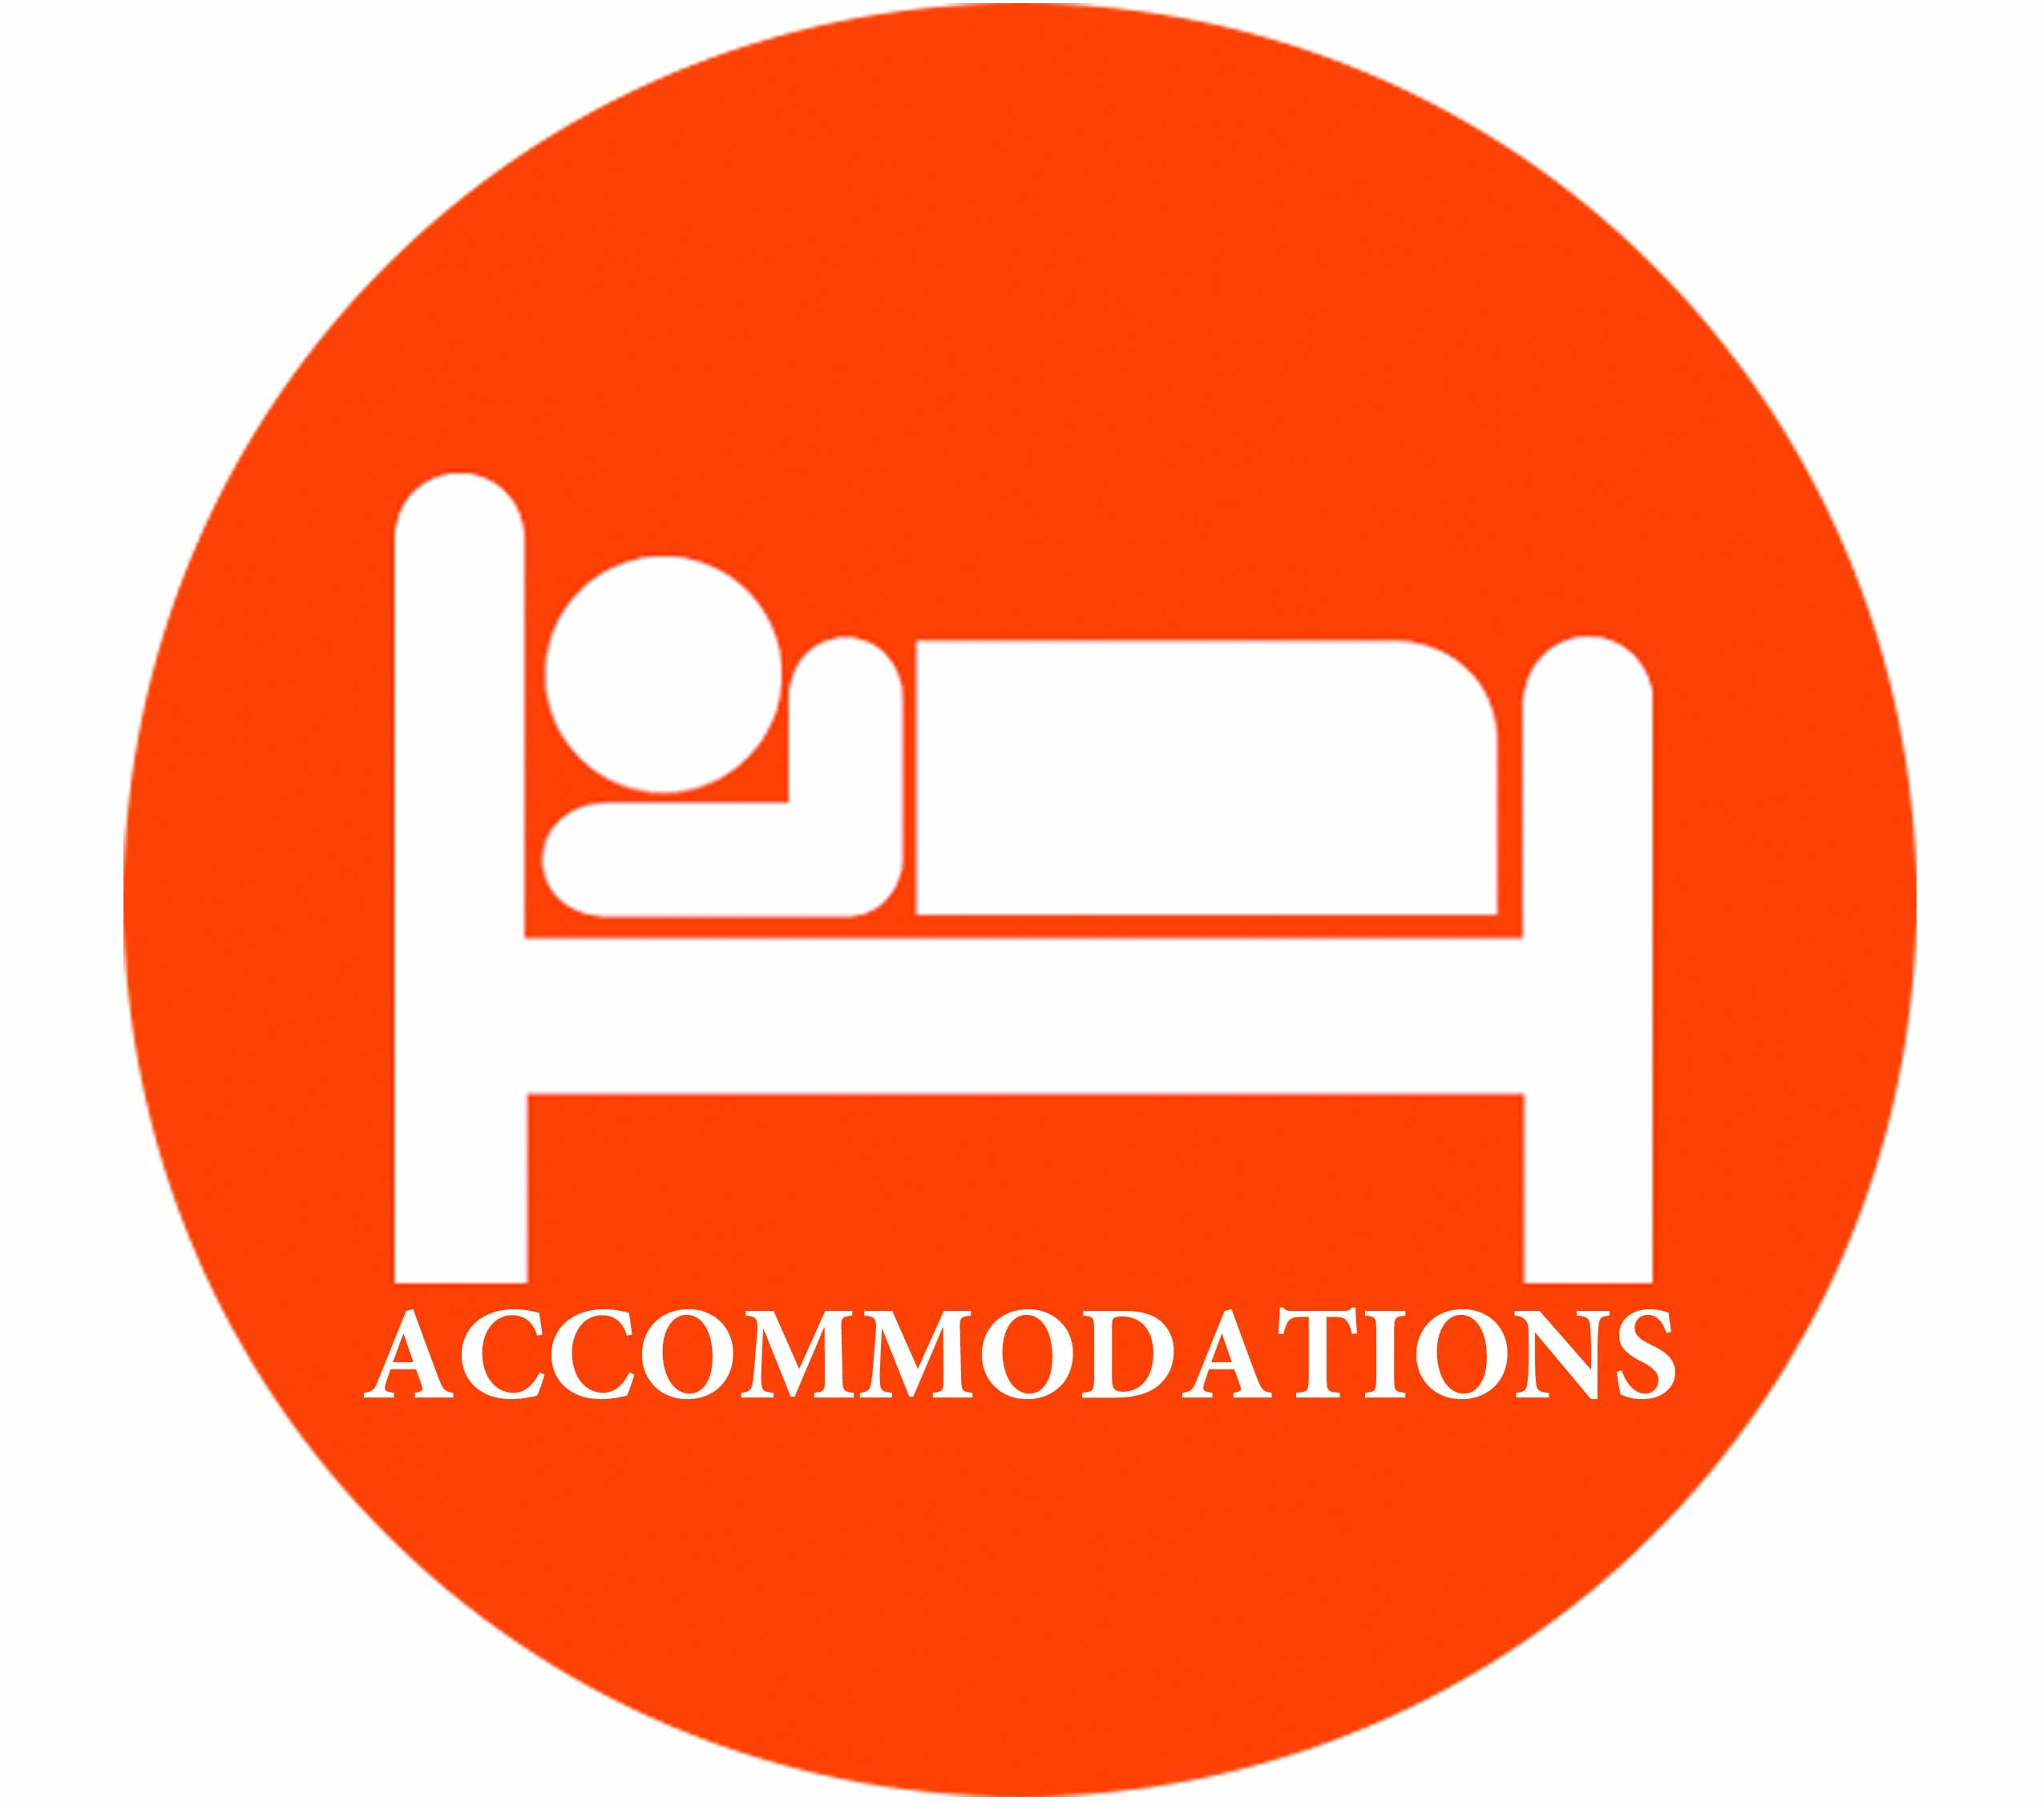 Accommodations Button.jpg